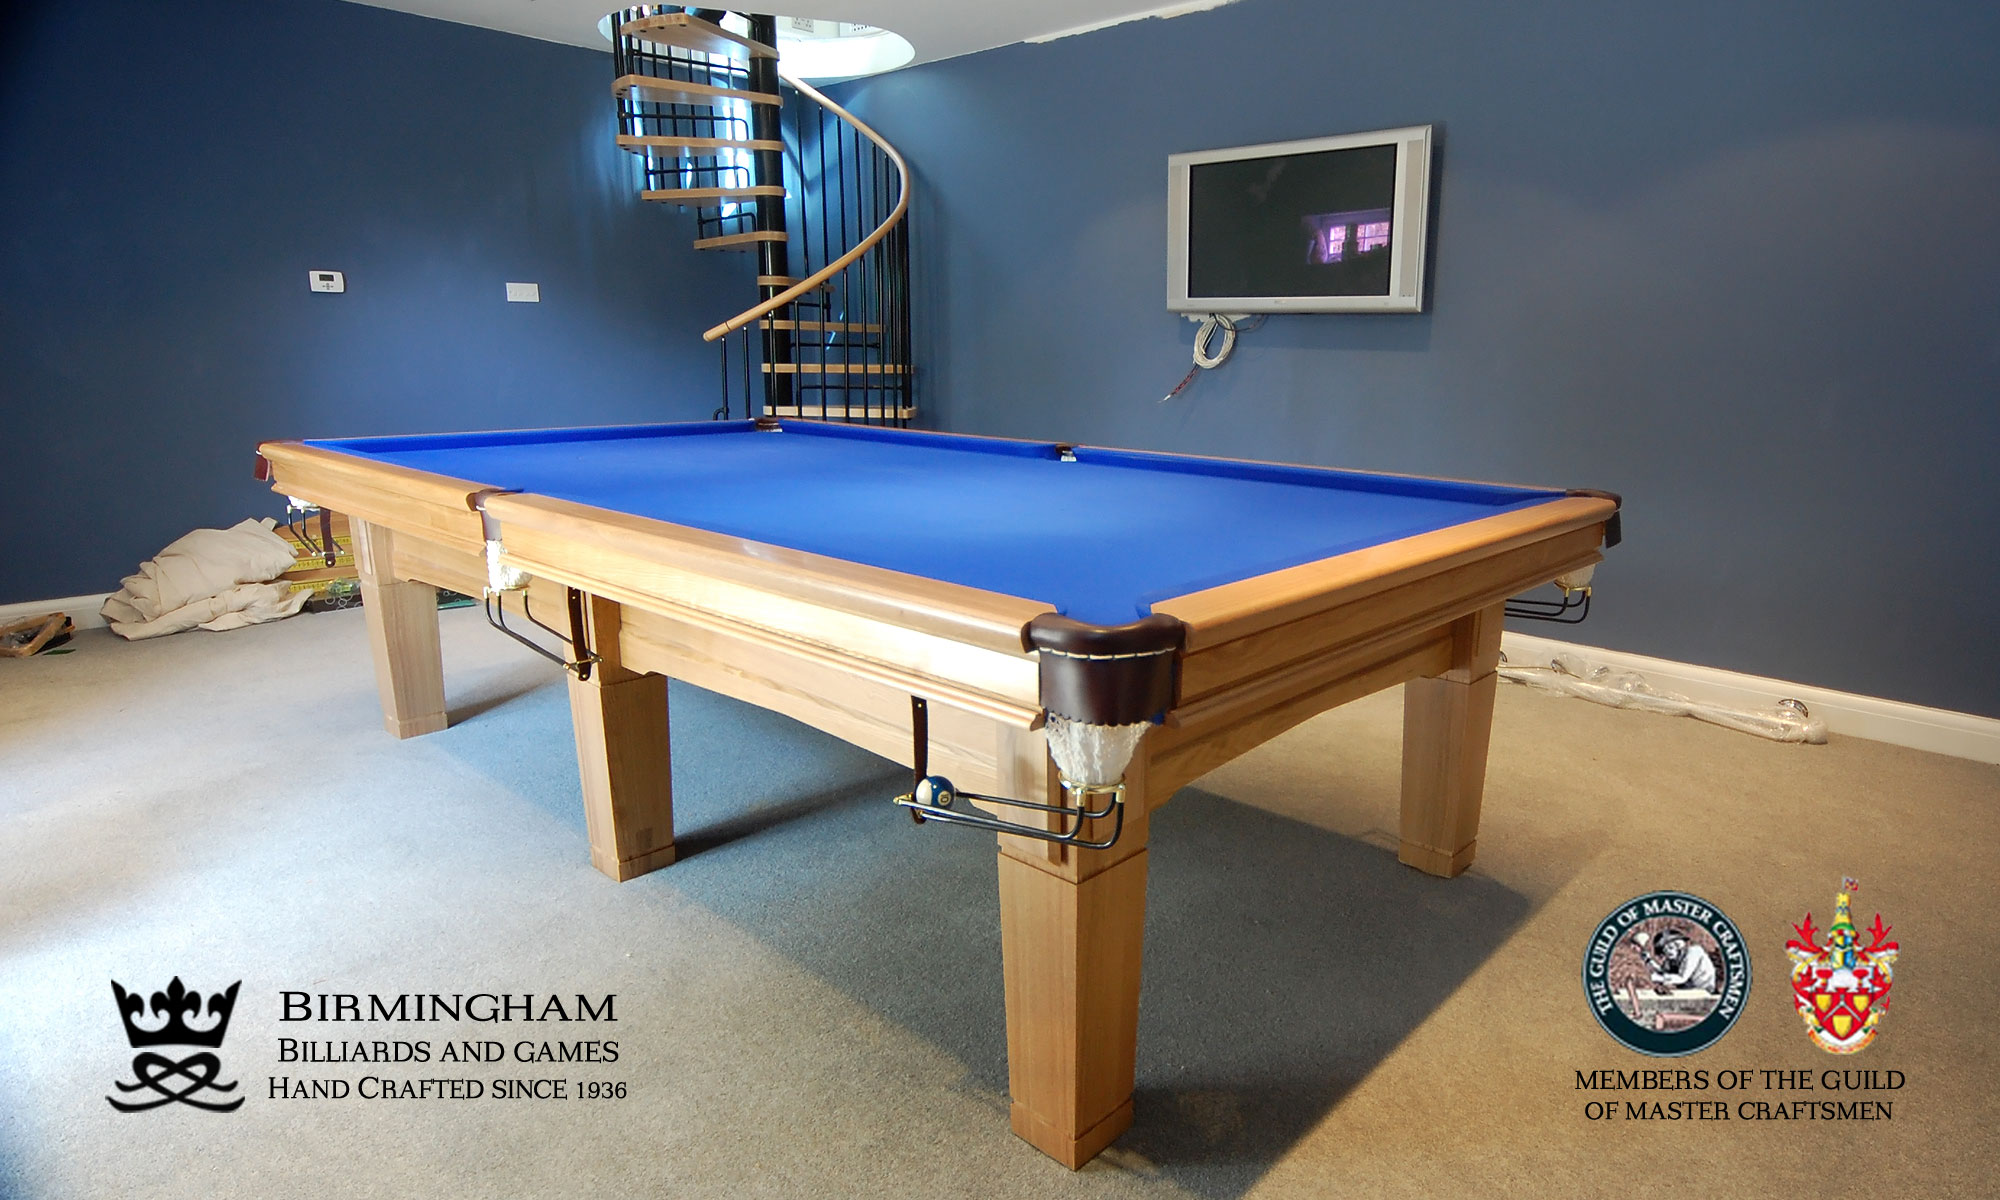 The Contemporary handmade pool table, light oak finish, royal blue baize, end view